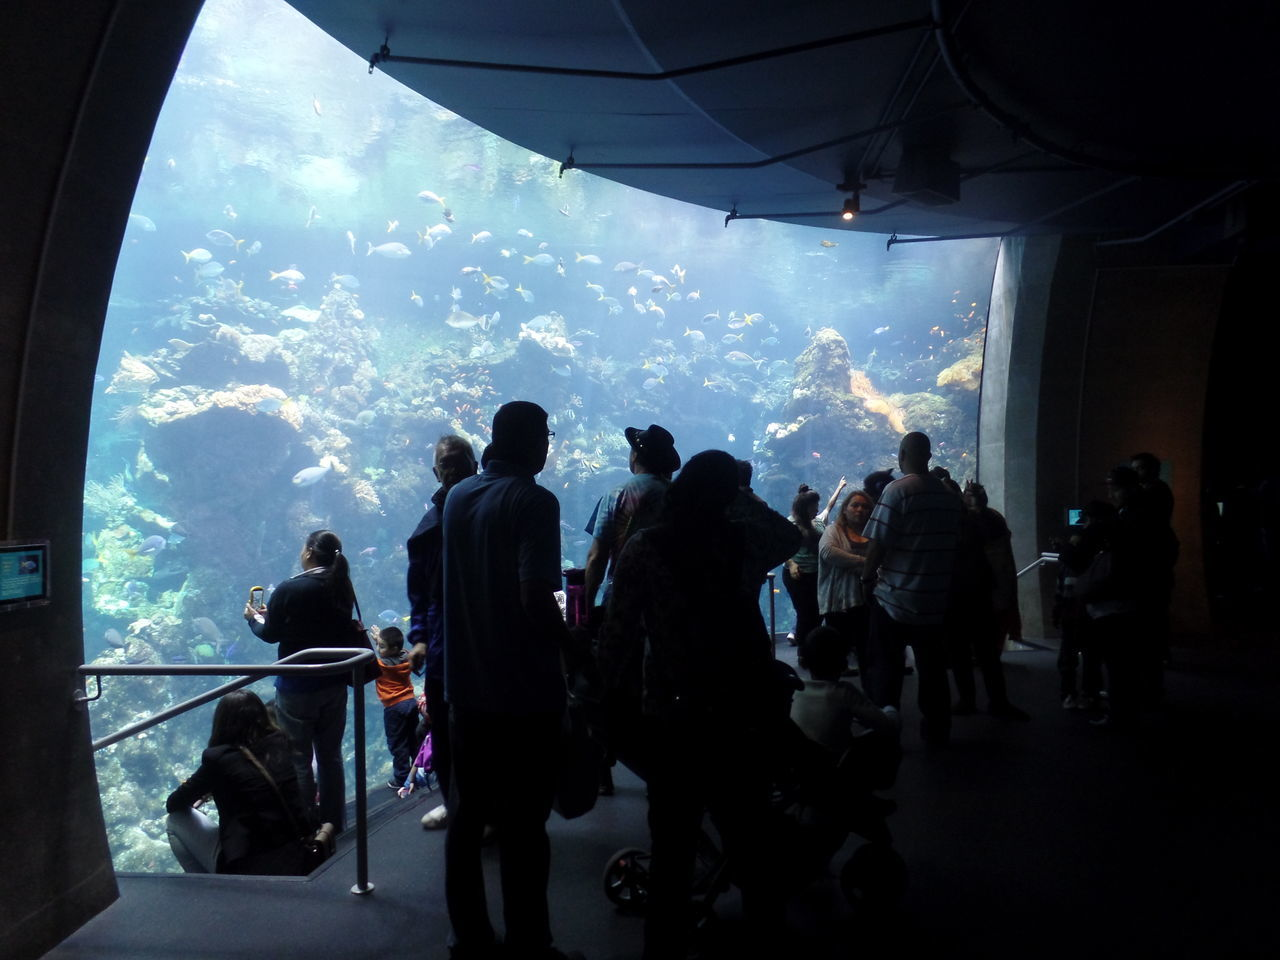 aquarium, real people, men, women, animals in captivity, indoors, leisure activity, mixed age range, silhouette, large group of people, sea life, watching, water, lifestyles, sea, swimming, childhood, nature, day, sky, people, adult